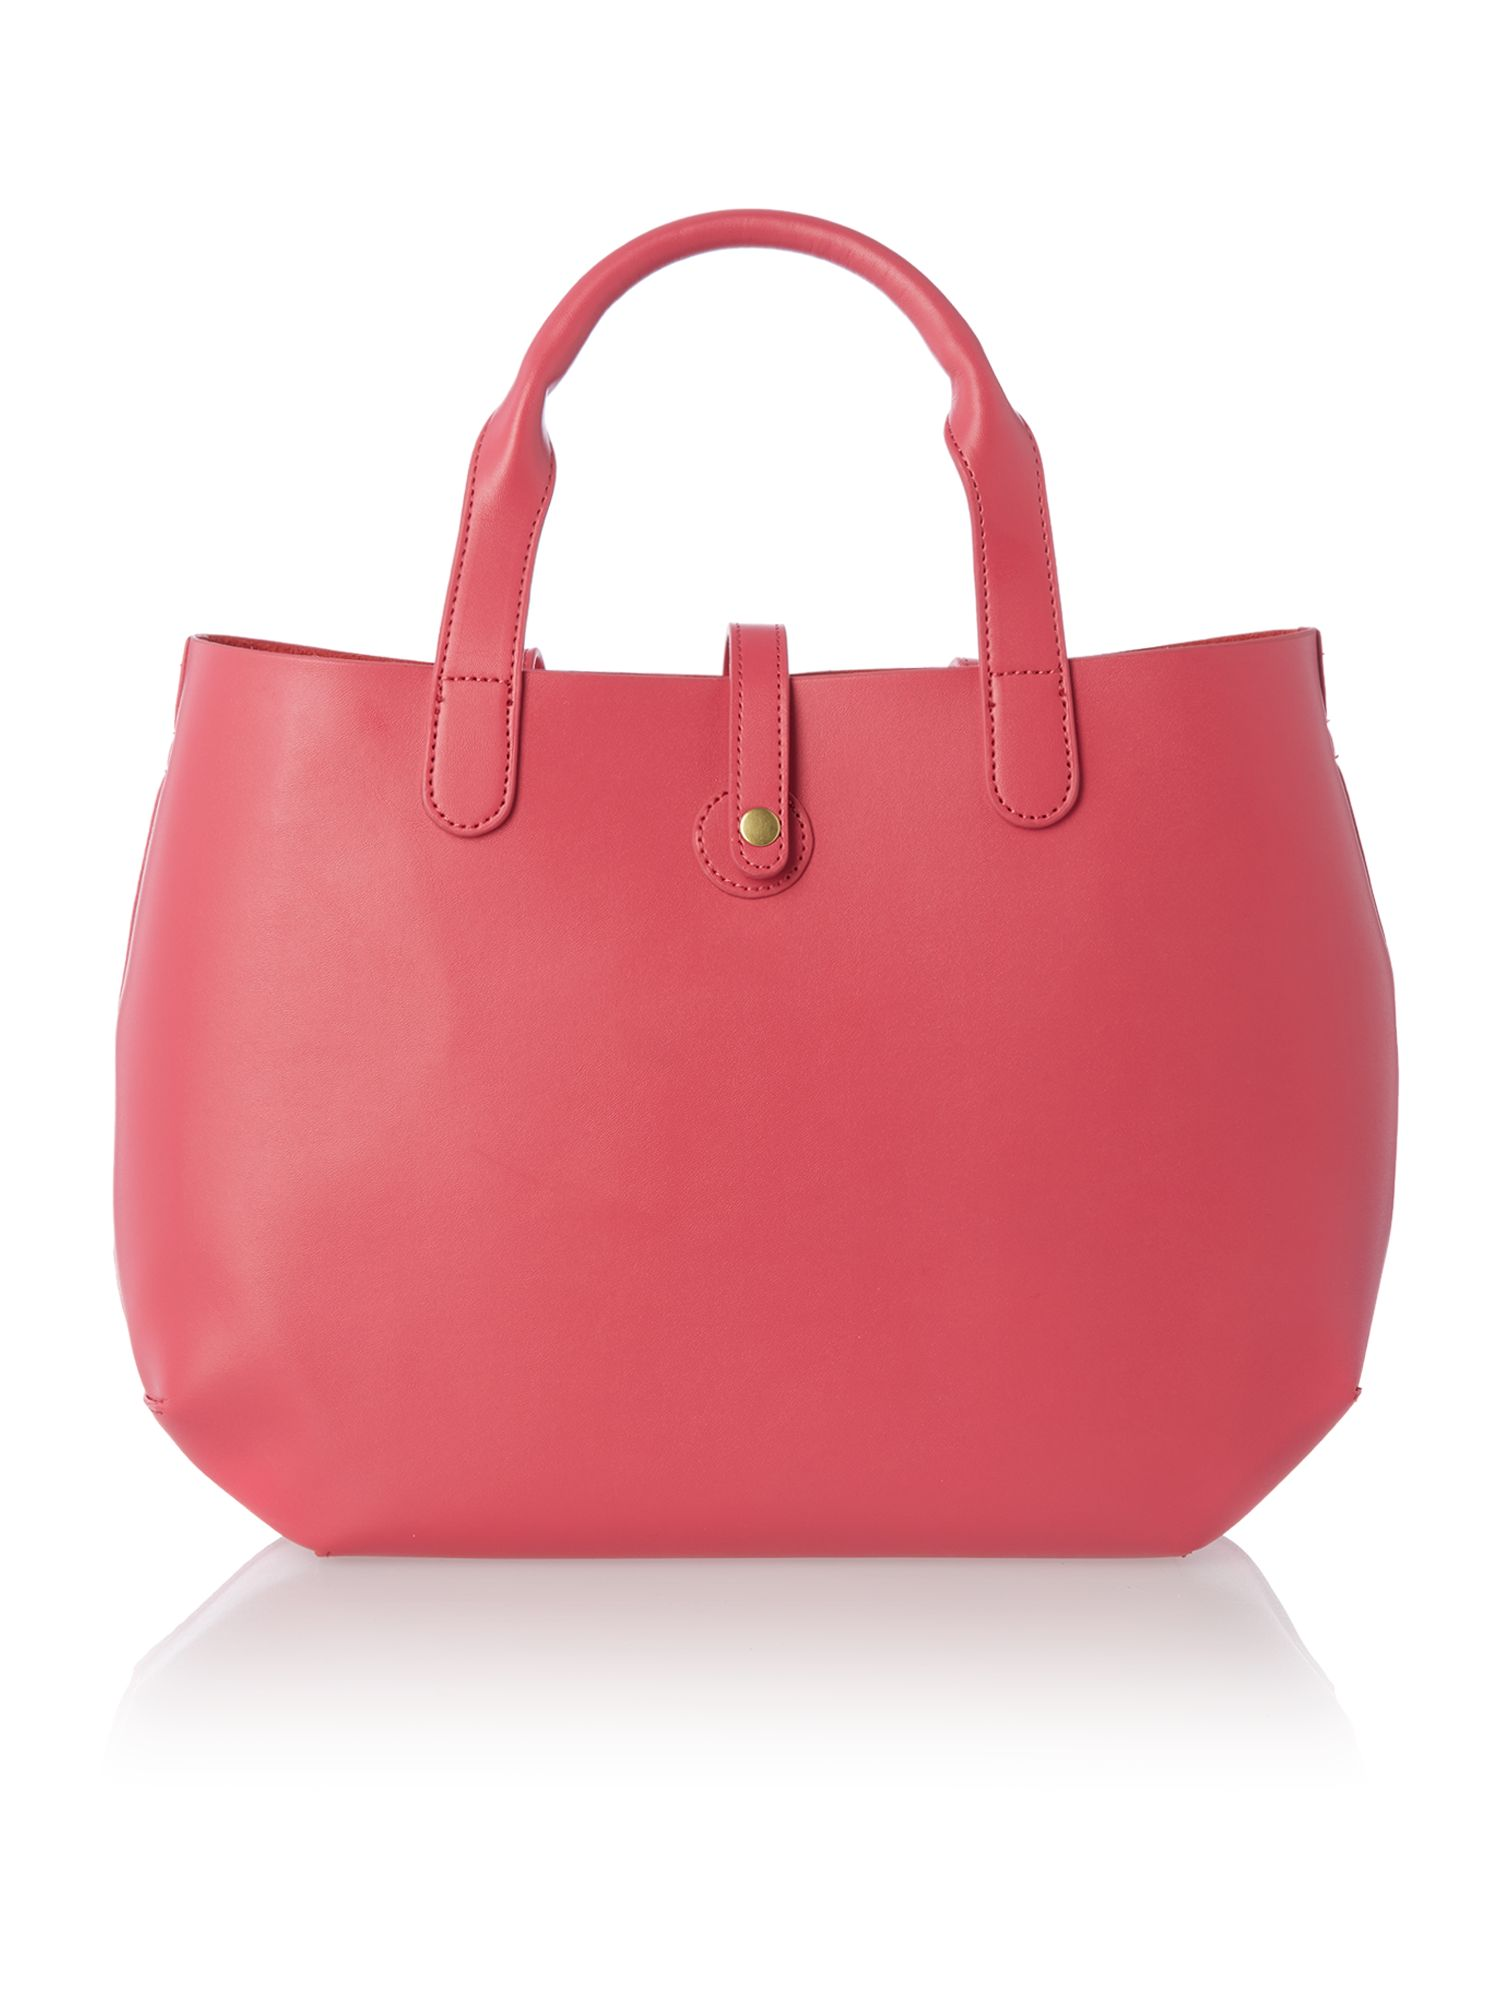 April pink tote bag